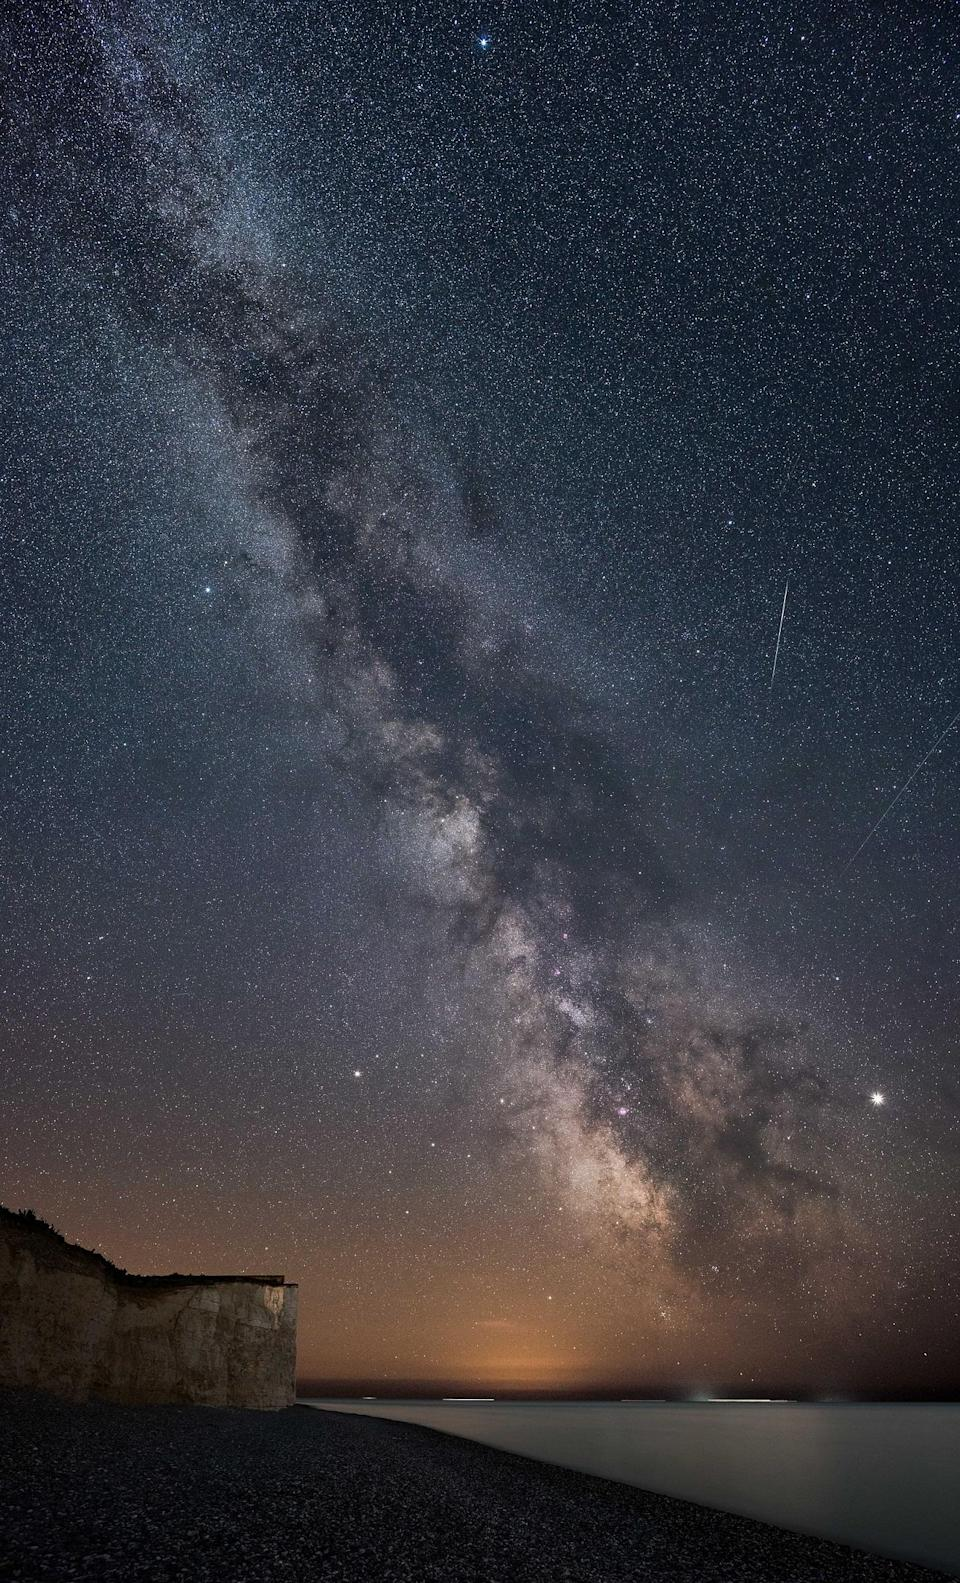 Second place was awarded to Milky Way at Birling Gap by John Fox (John Fox/PA)